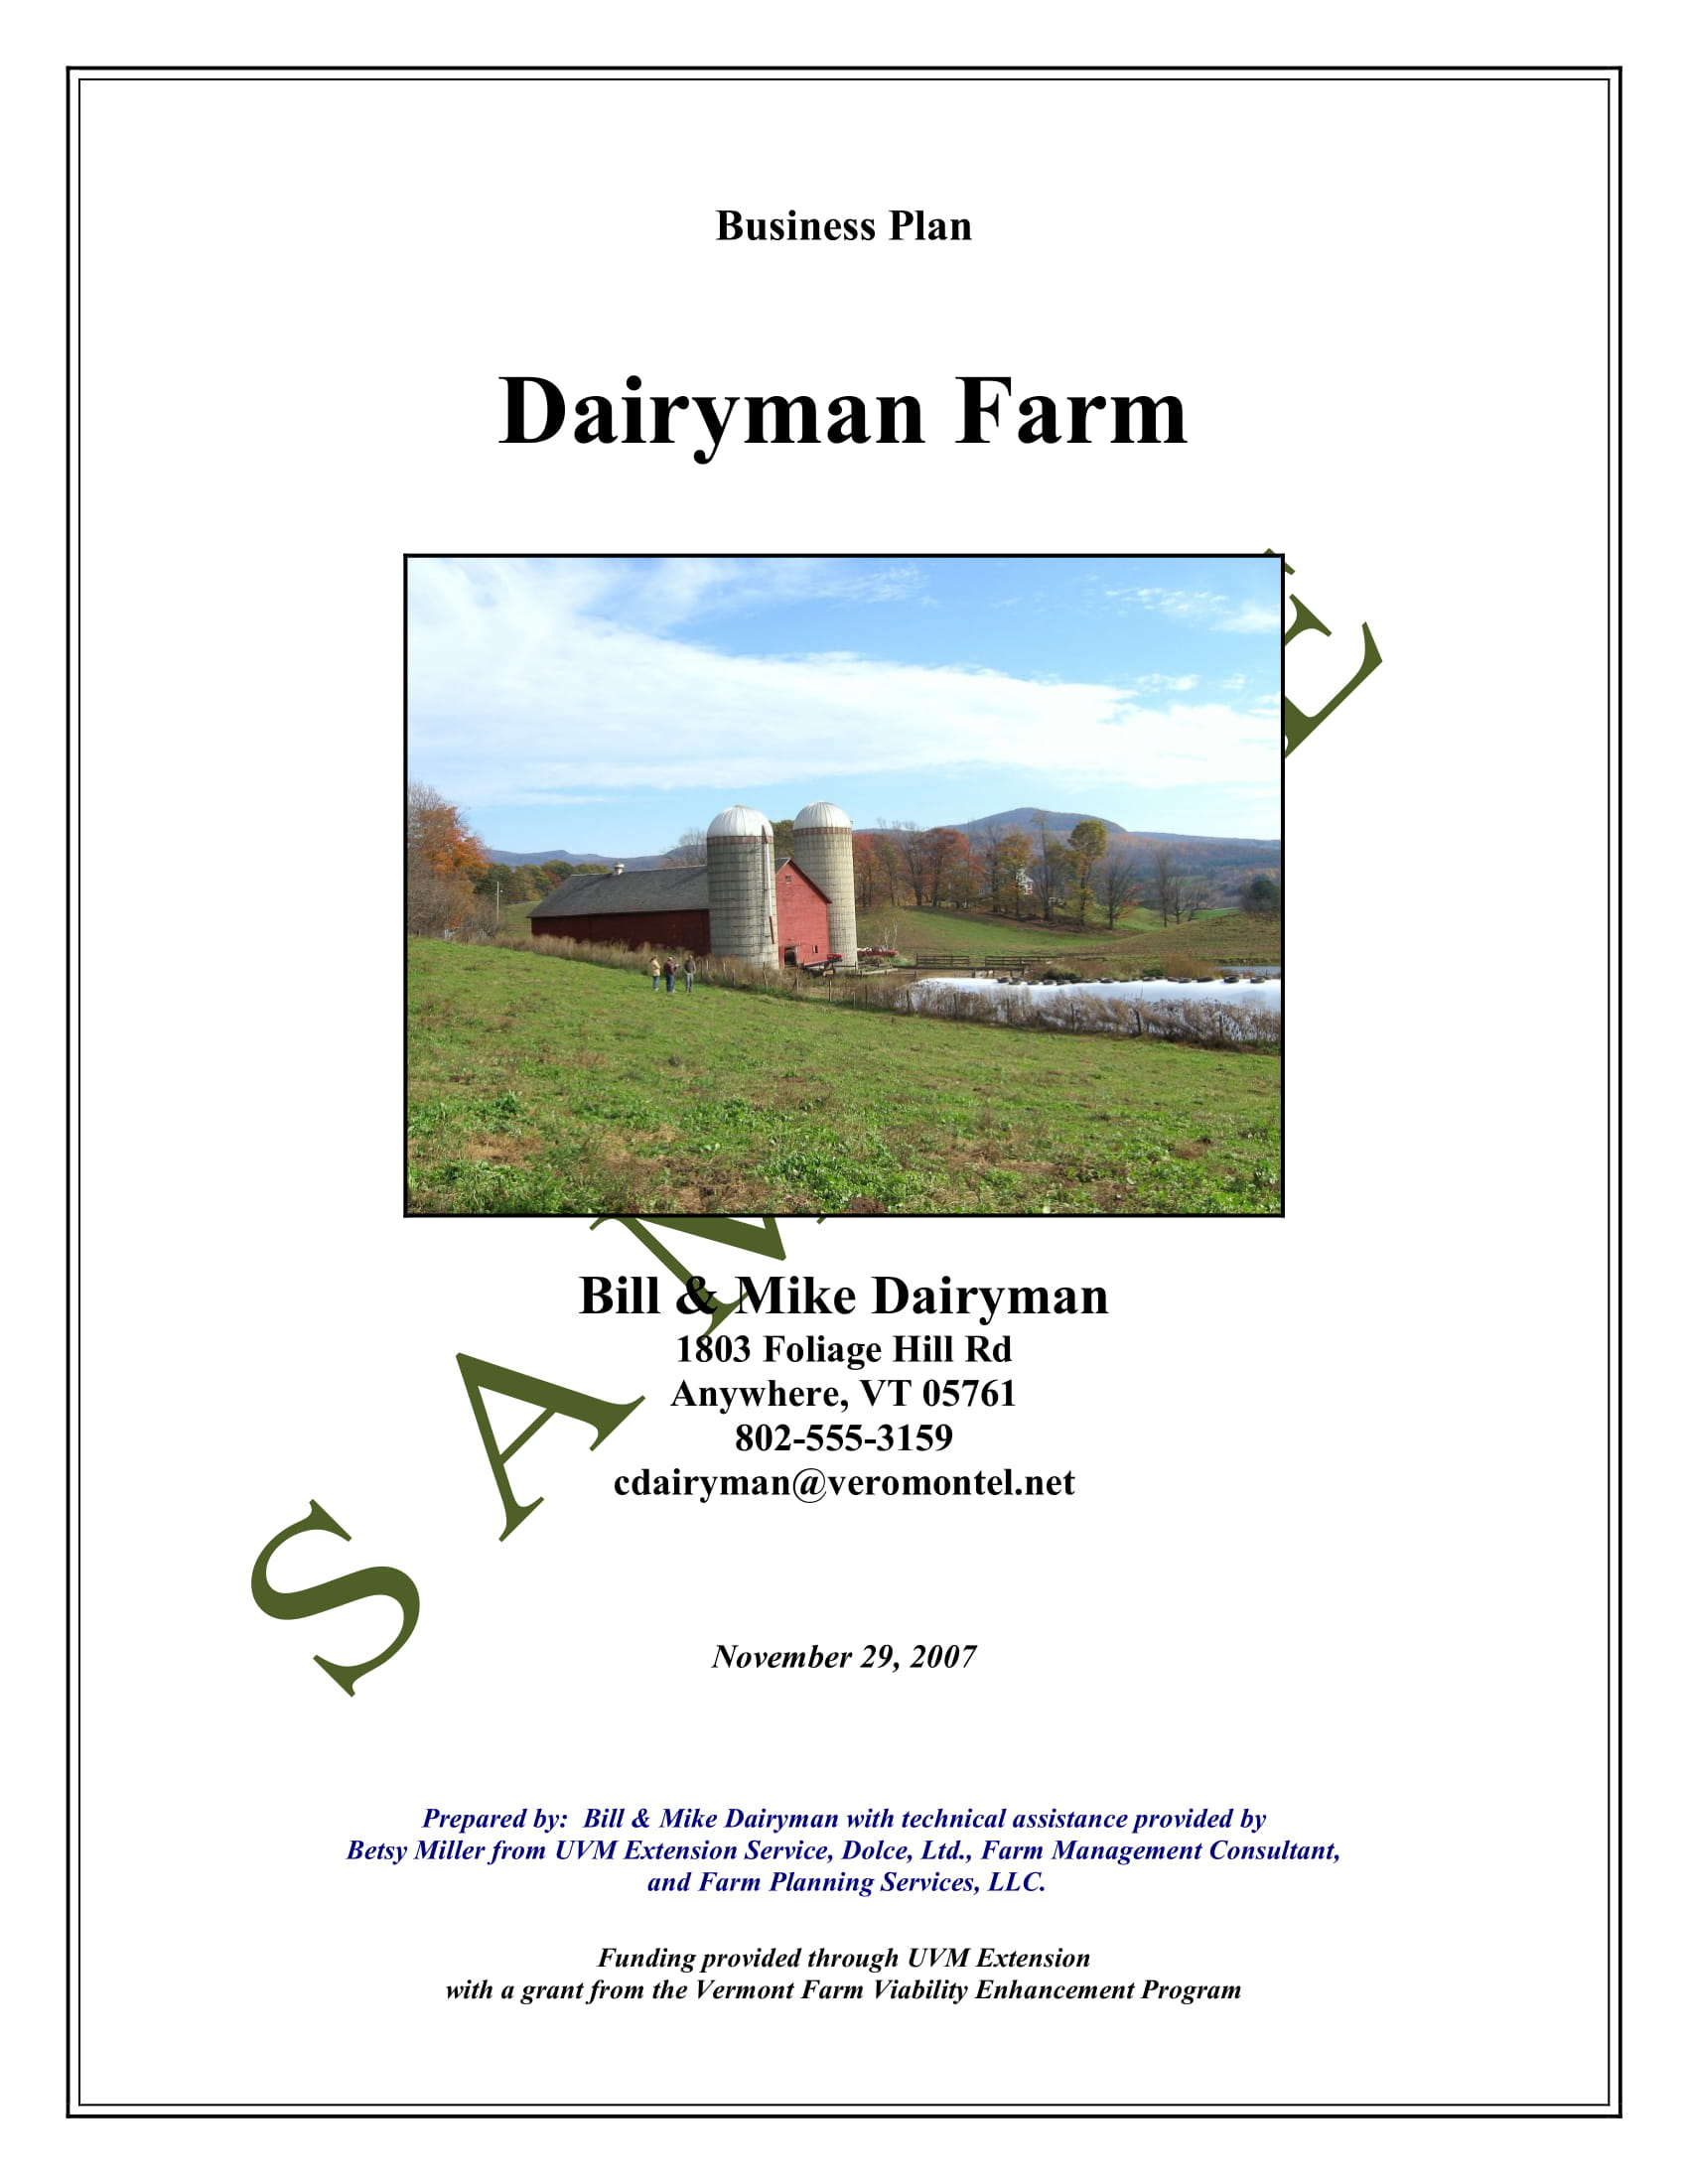 dairy farm business plan example 011